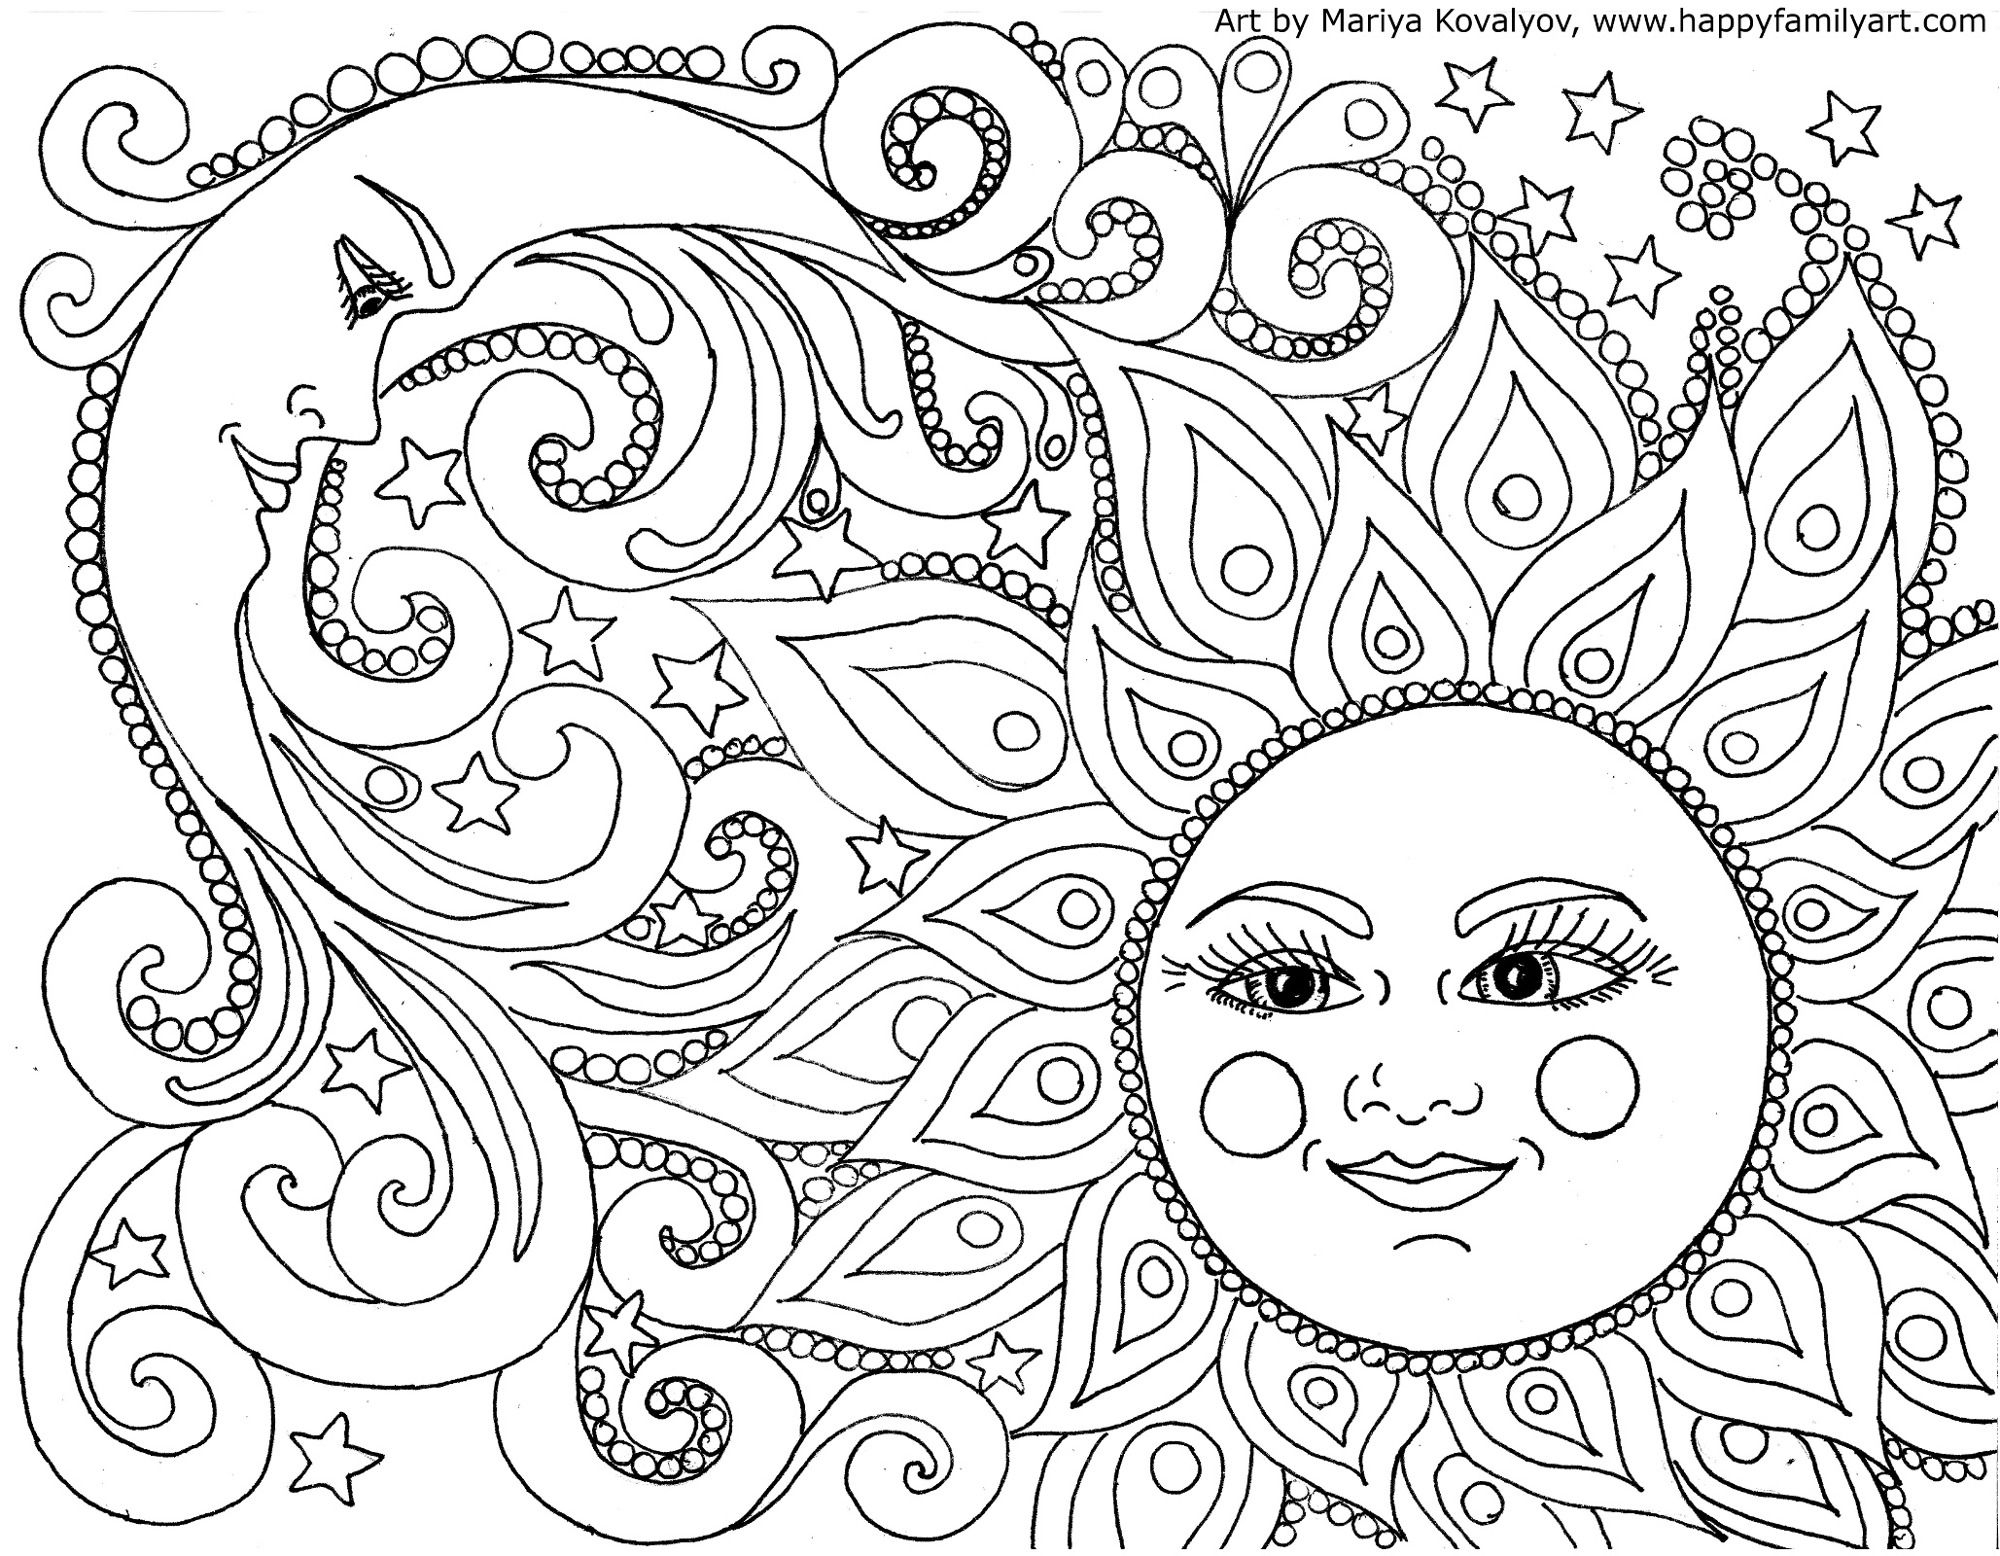 2000x1556 Full Free Mandala Coloring Pages For Adults Printables Printable